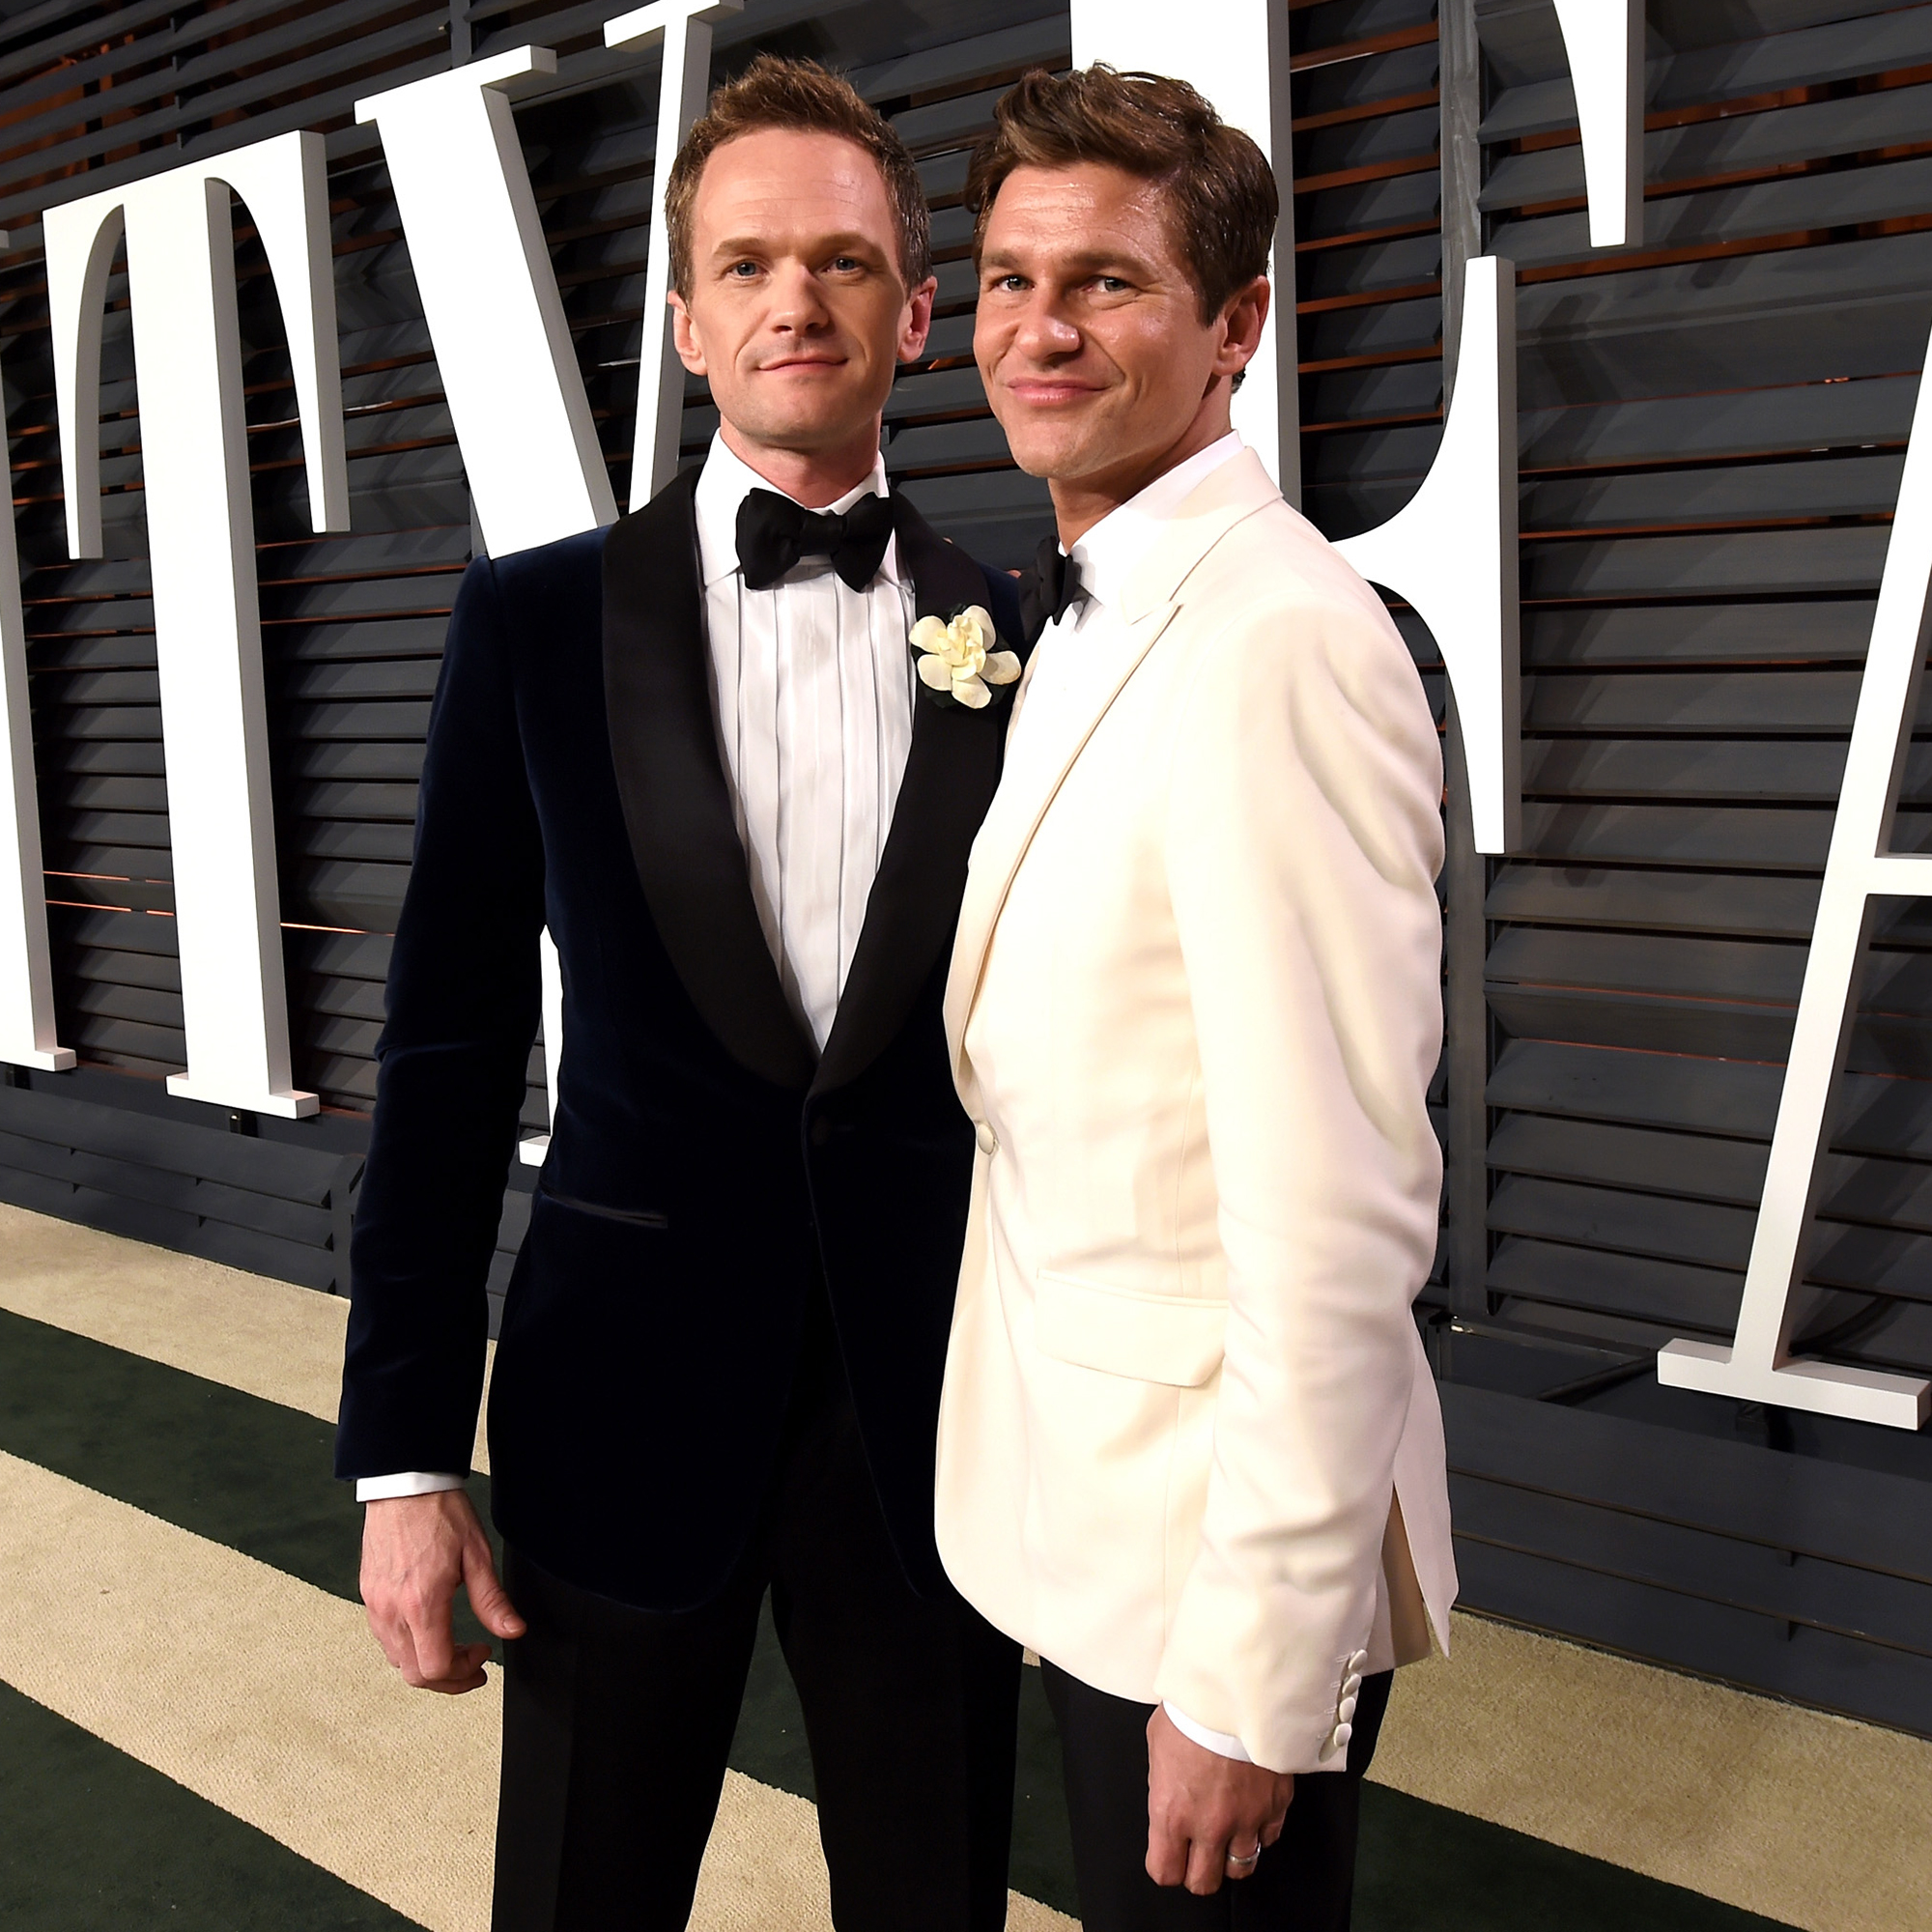 David Burtka On Entertaining With Neil Patrick Harris - Neil Patrick Harris and David Burtka.